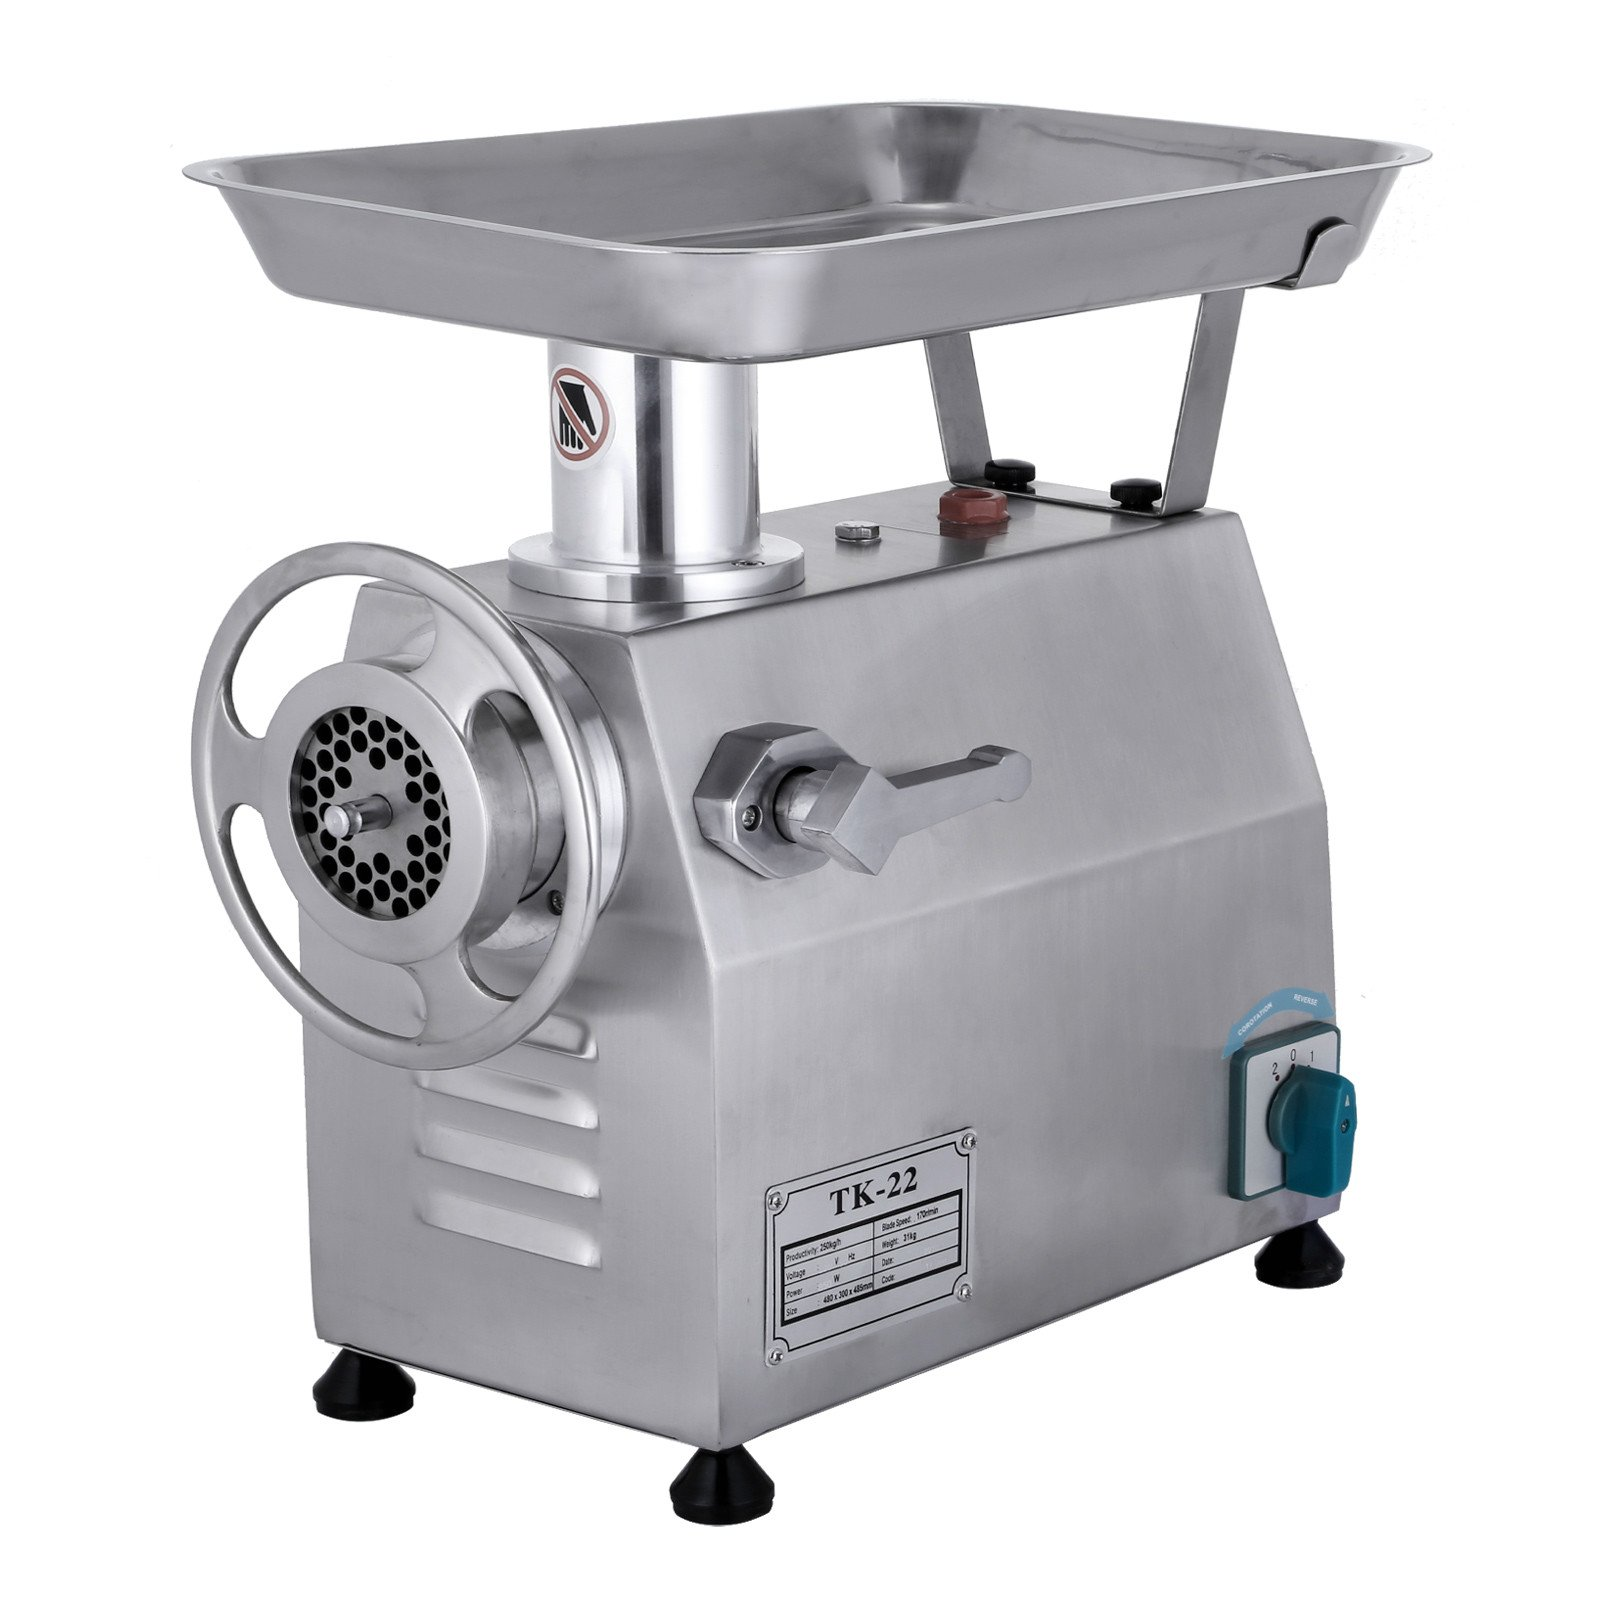 Forkwin Meat Grinder 850W Meat Mincer 550LBS/H Meat Mincer Grinder 180/218 RPM Meat Mincer Electric for Home Use